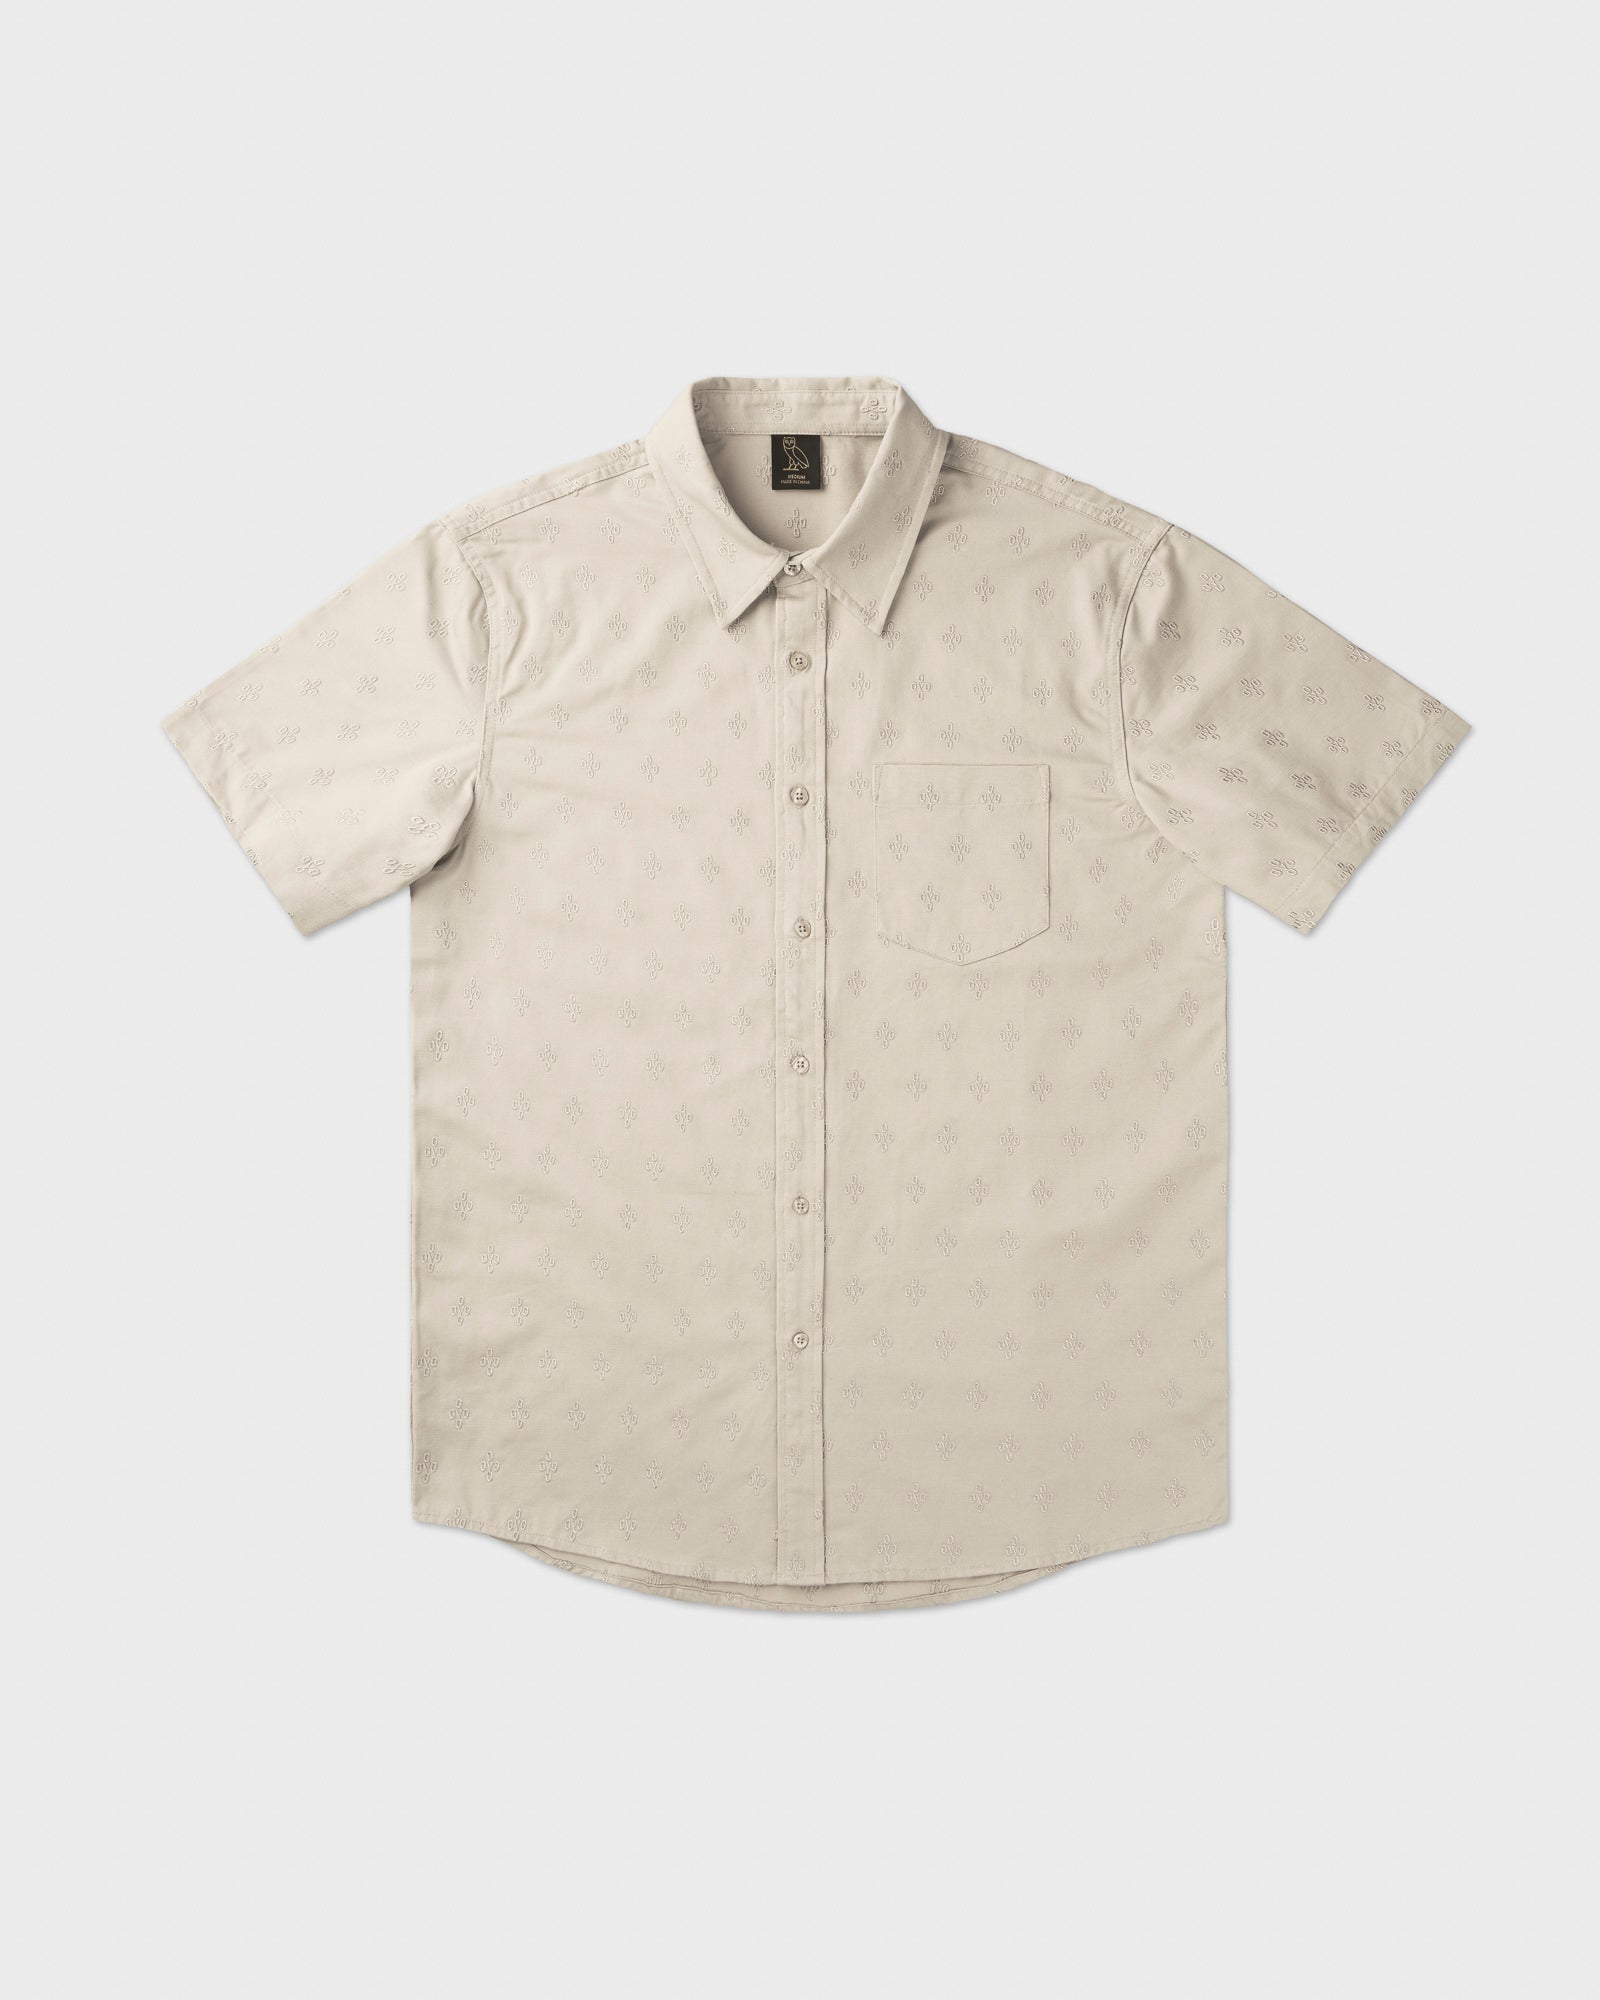 MONOGRAM EMBROIDERED BUTTON DOWN SHIRT - SAND IMAGE #1